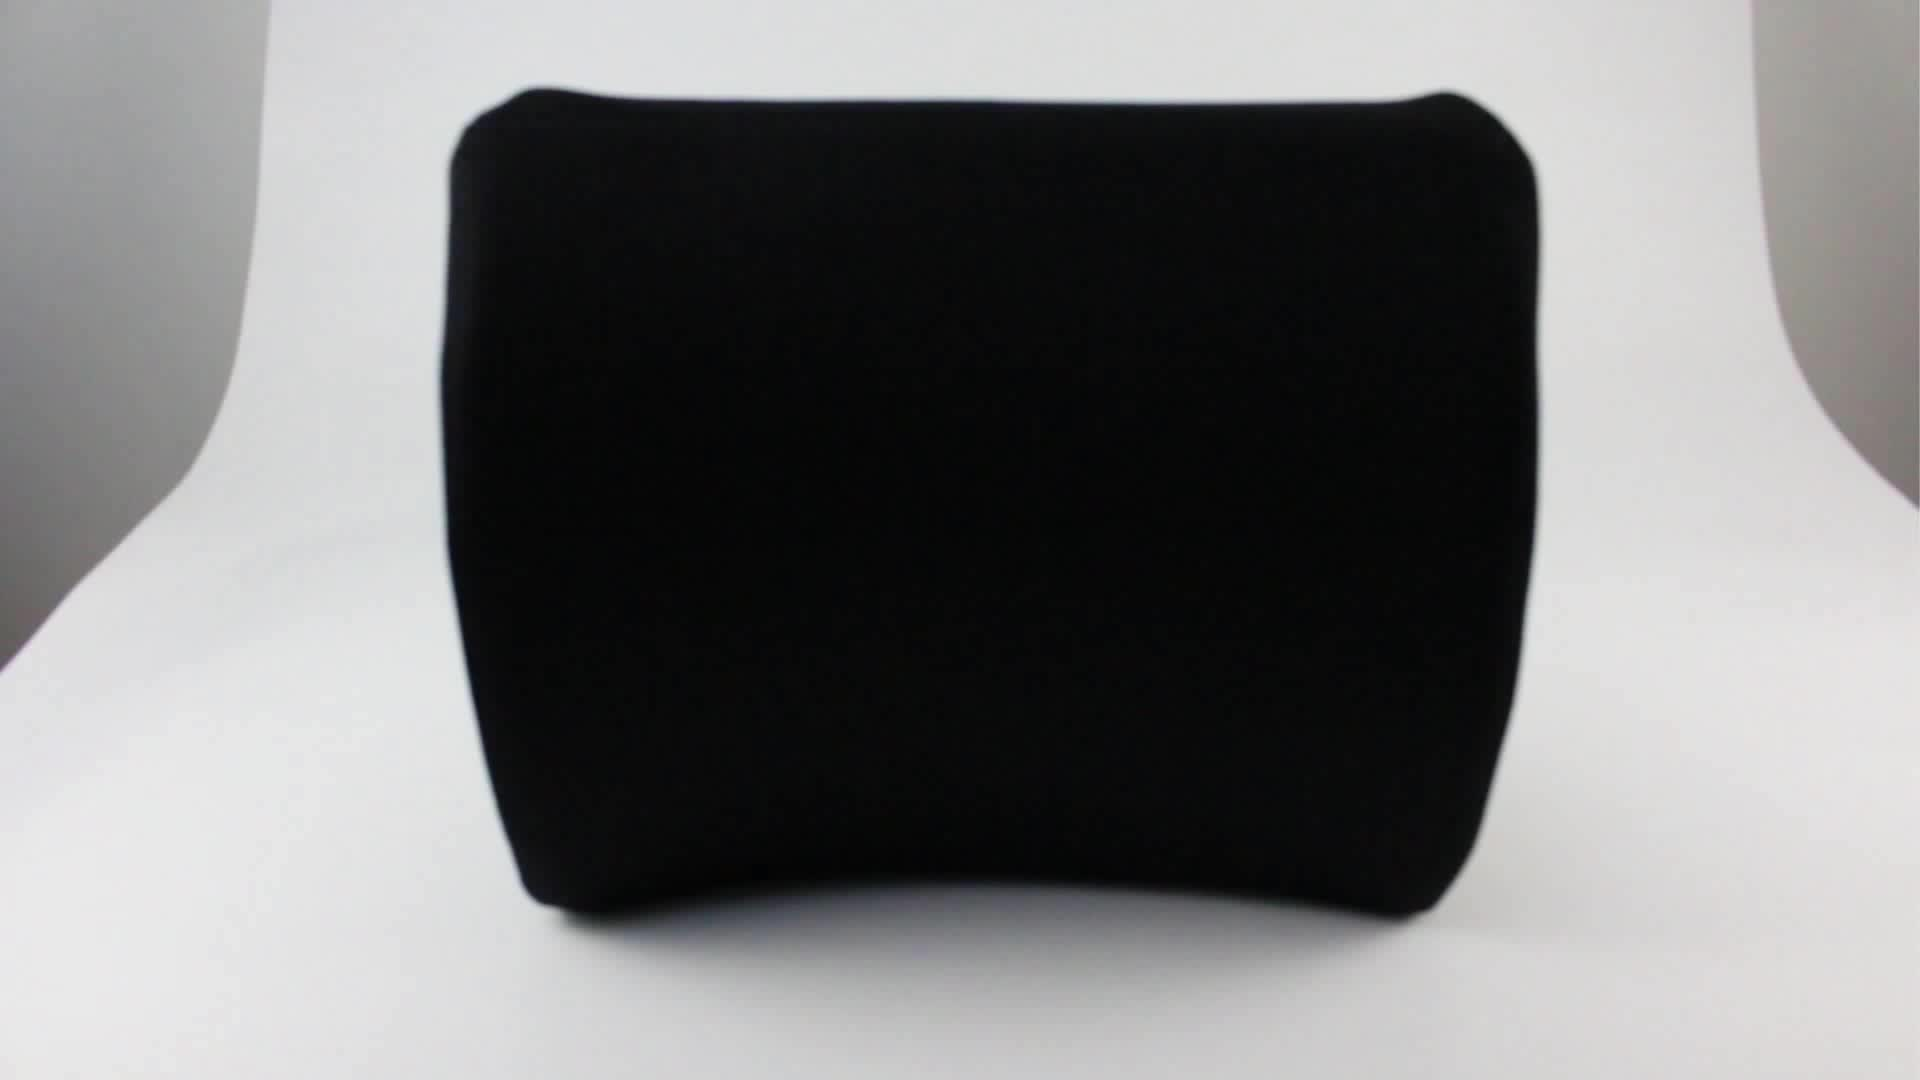 Memory Foam Scoliosis Chair Cushion Supports Lower Back For Easy Posture In The Car, Office, chair insert for back support